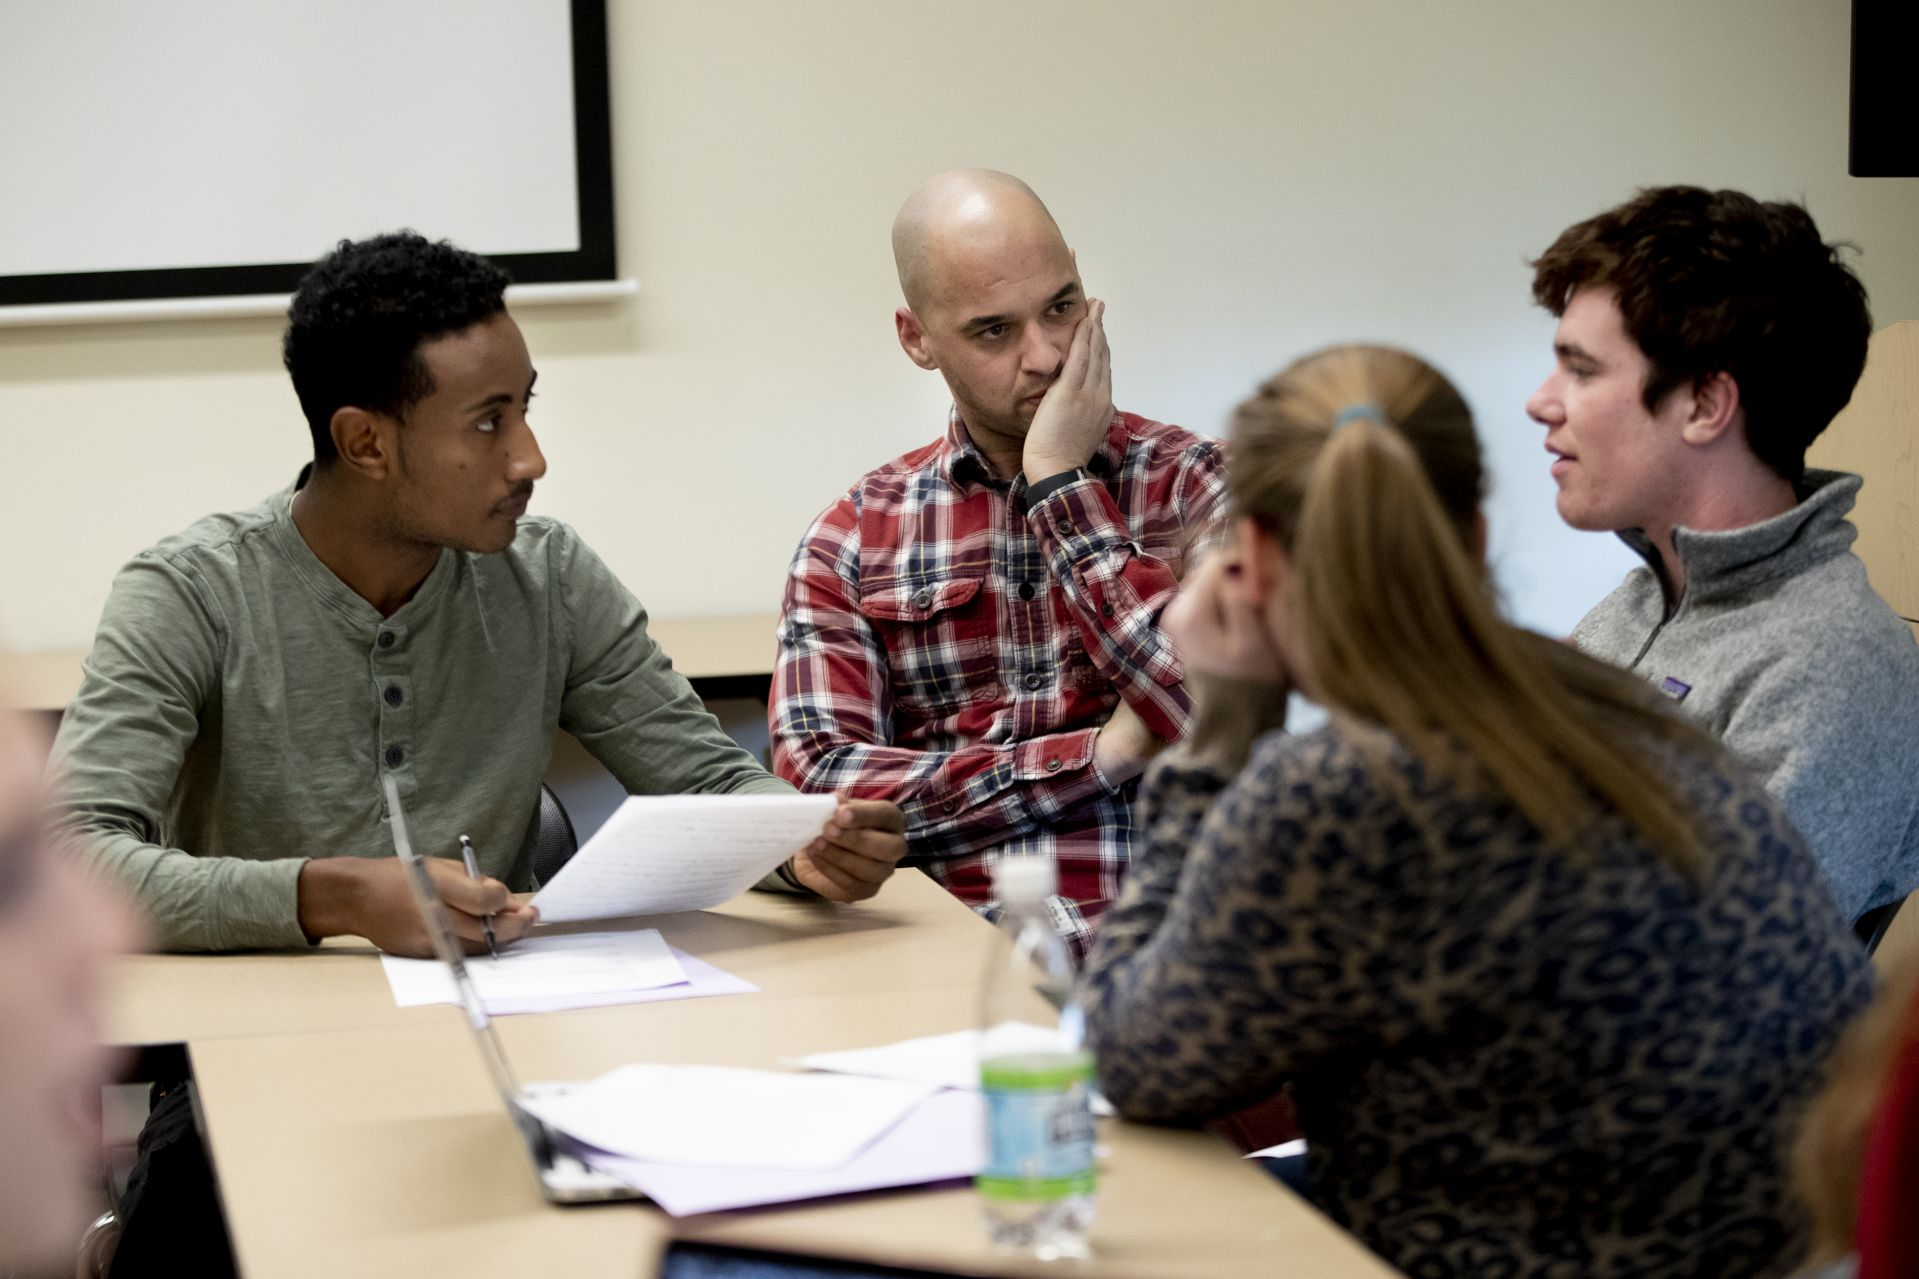 """A day in the life of Pettengill Hall, featuring staff, faculty and students engaged in learning, studying, and working, with both internal and external images.Andrew Baker teaches """"Black Resistance in U.S. History,"""" 116"""